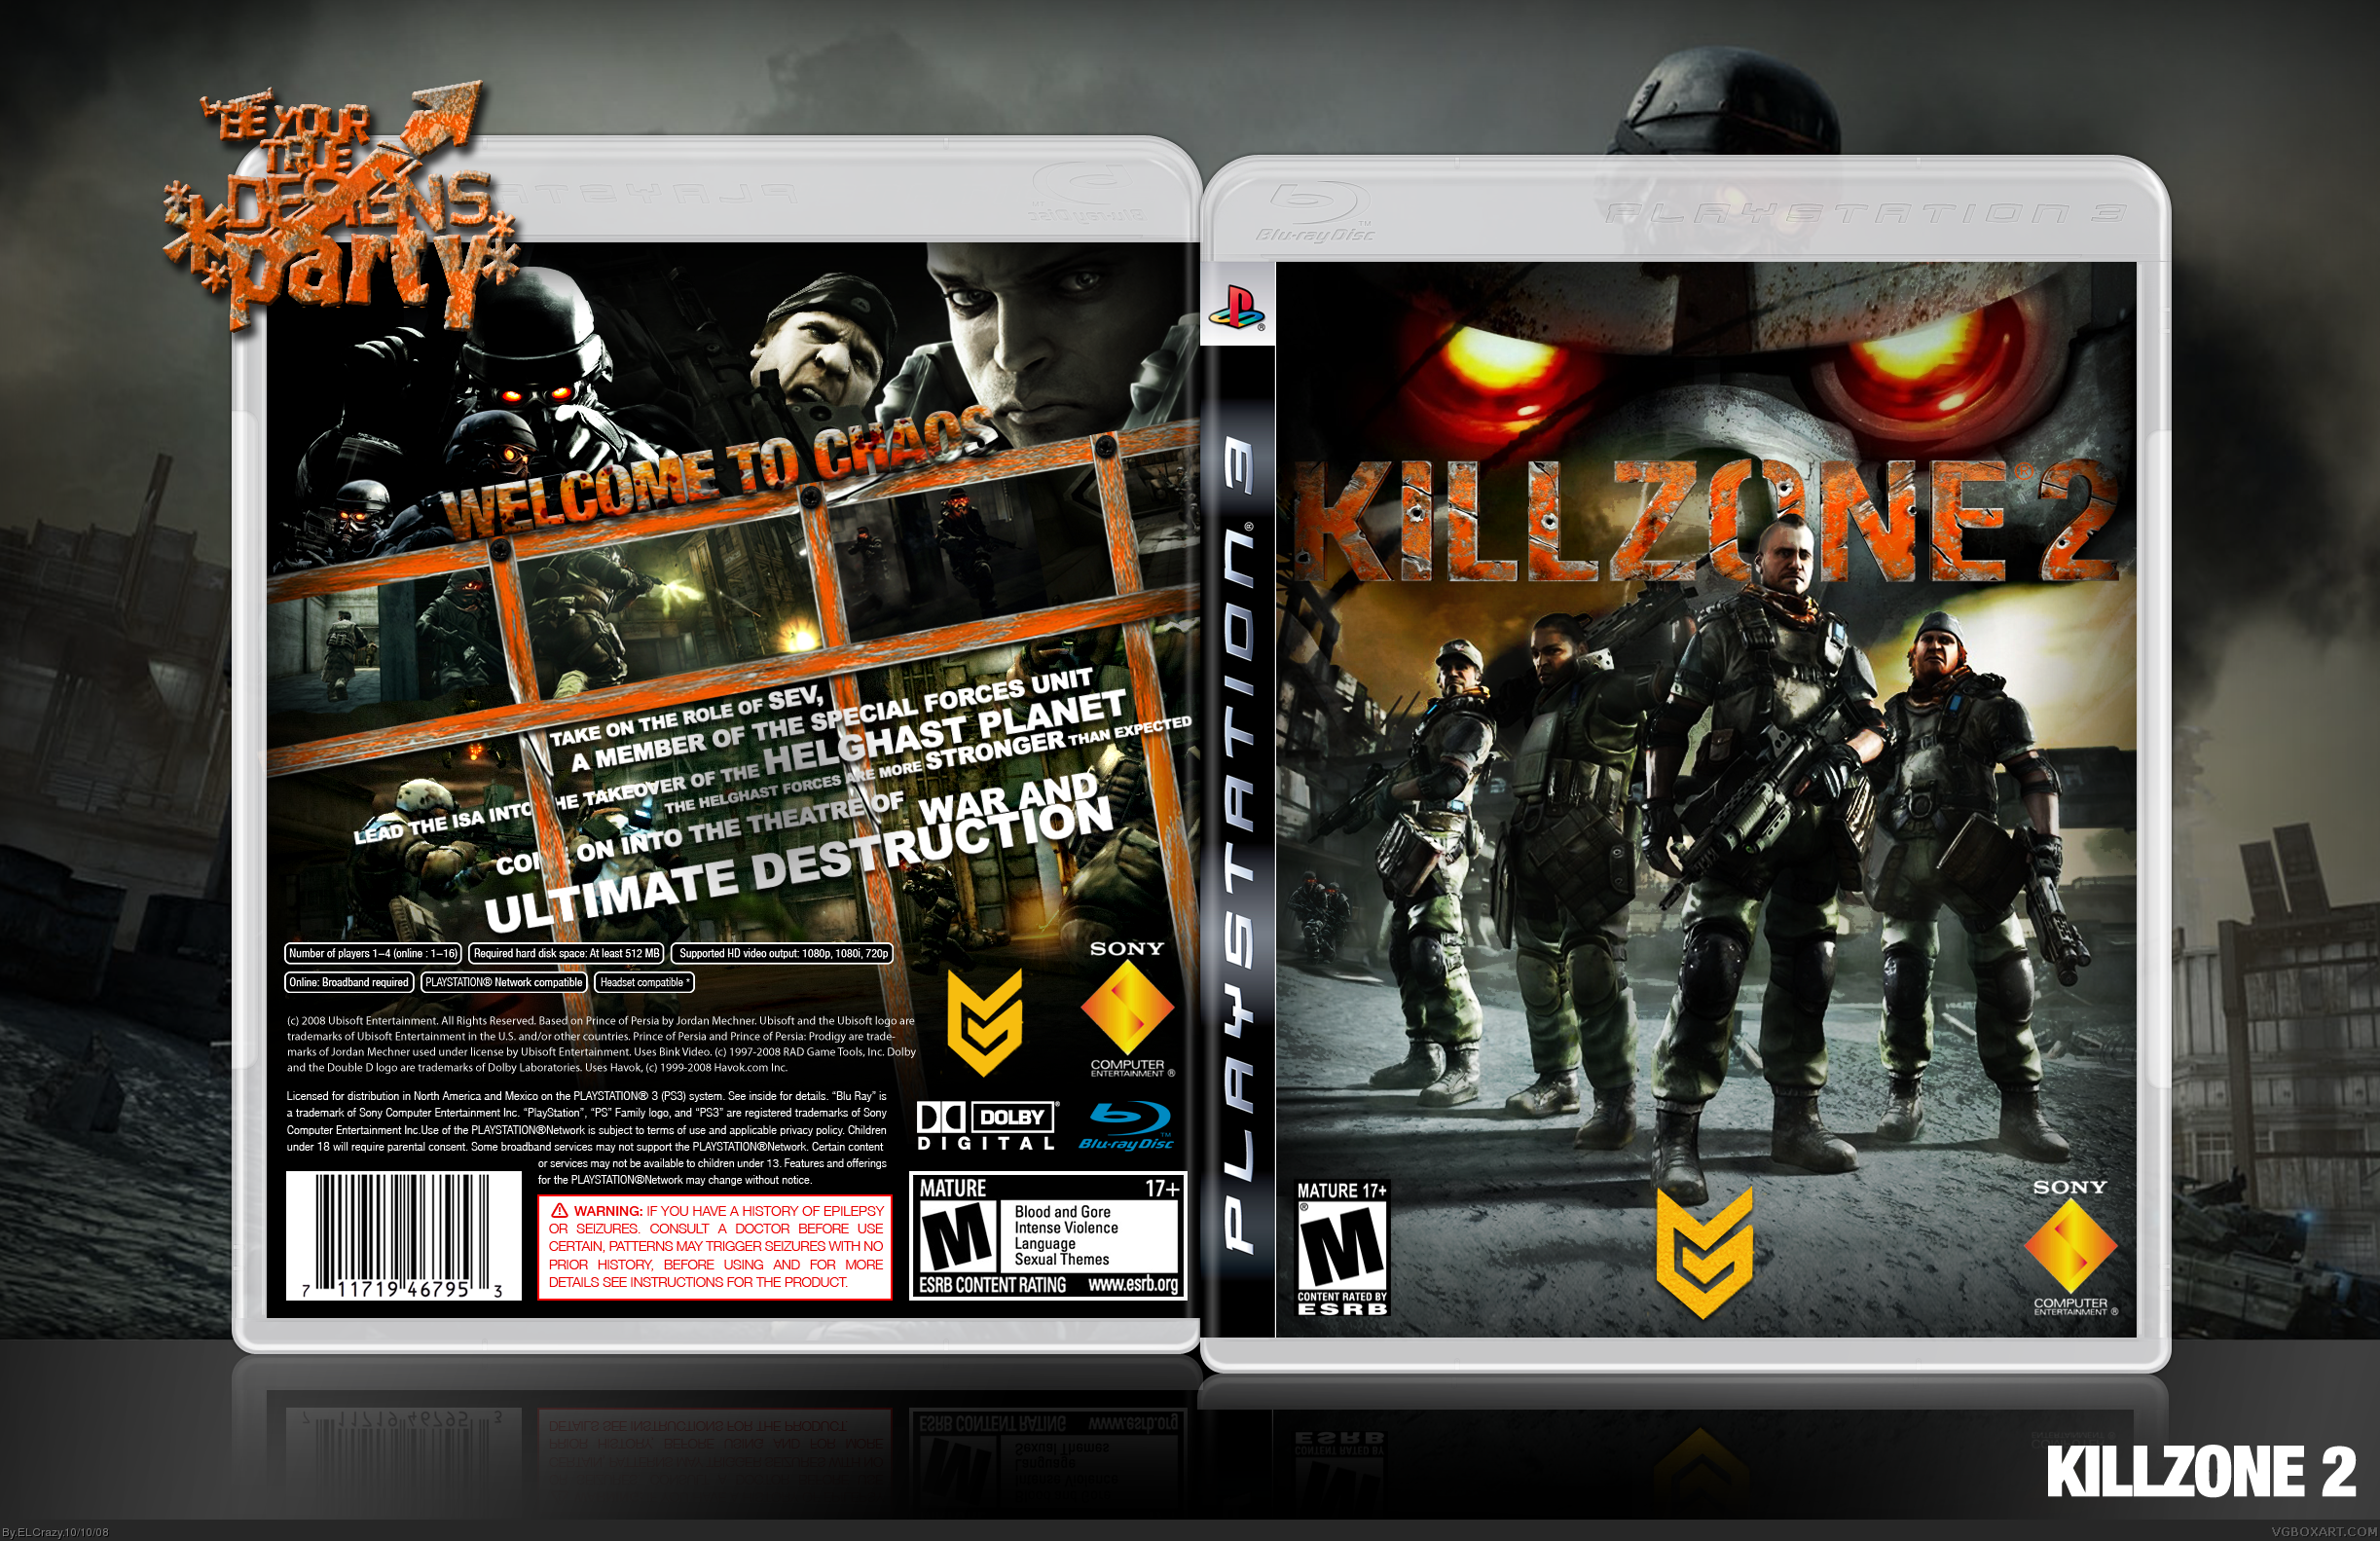 Killzone 2 box cover